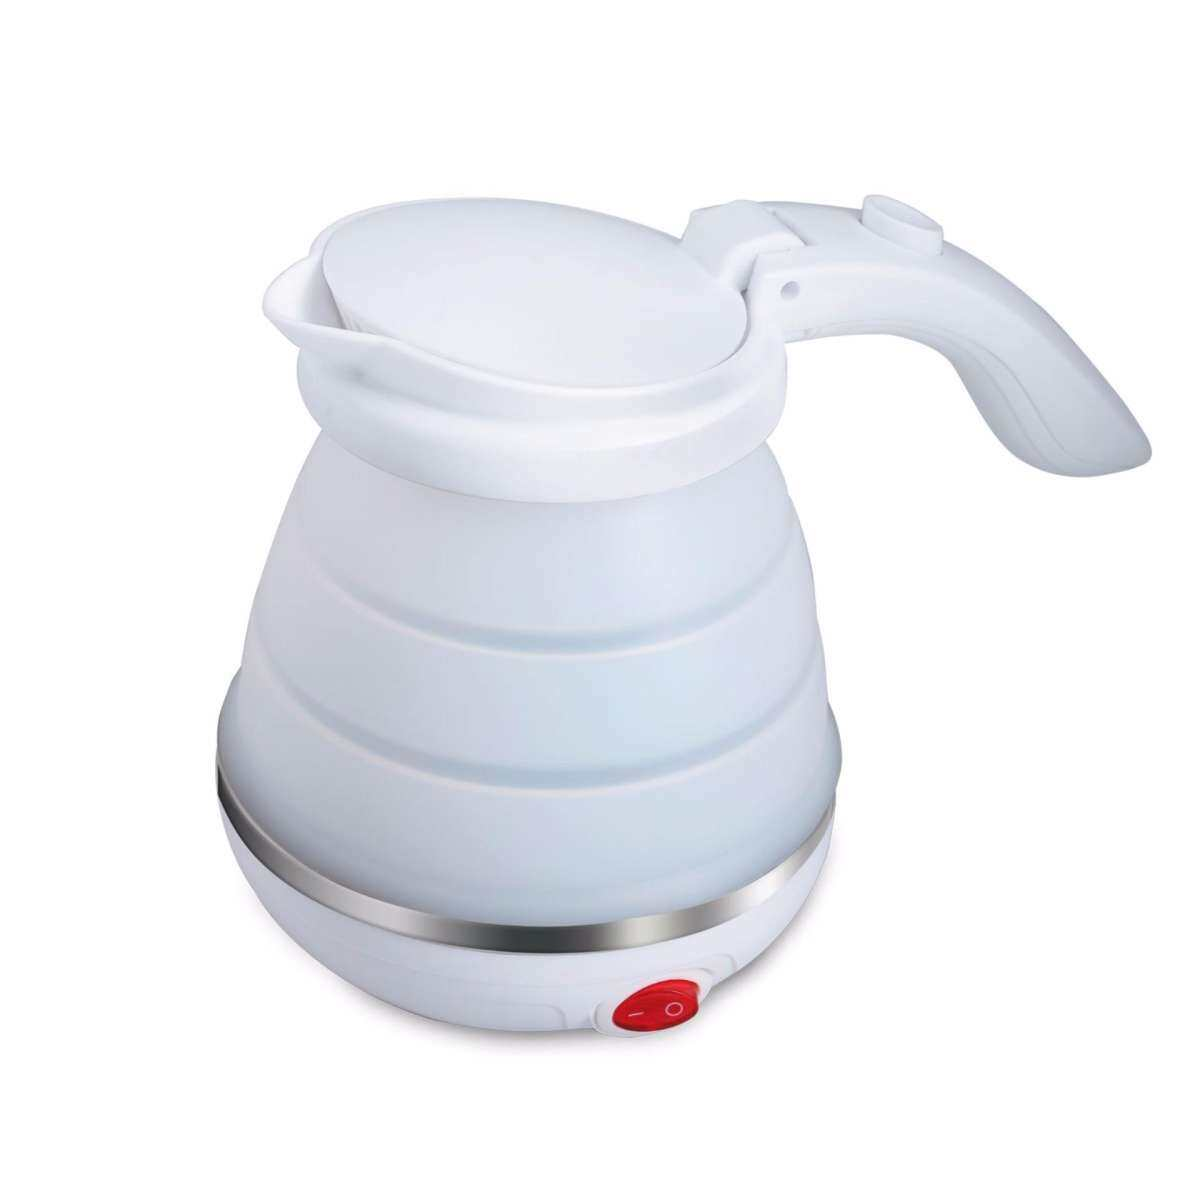 Dual Voltage 0.5L Travel Electric Kettle, Foldable,Food Grade Silicone,800W heating element(White)